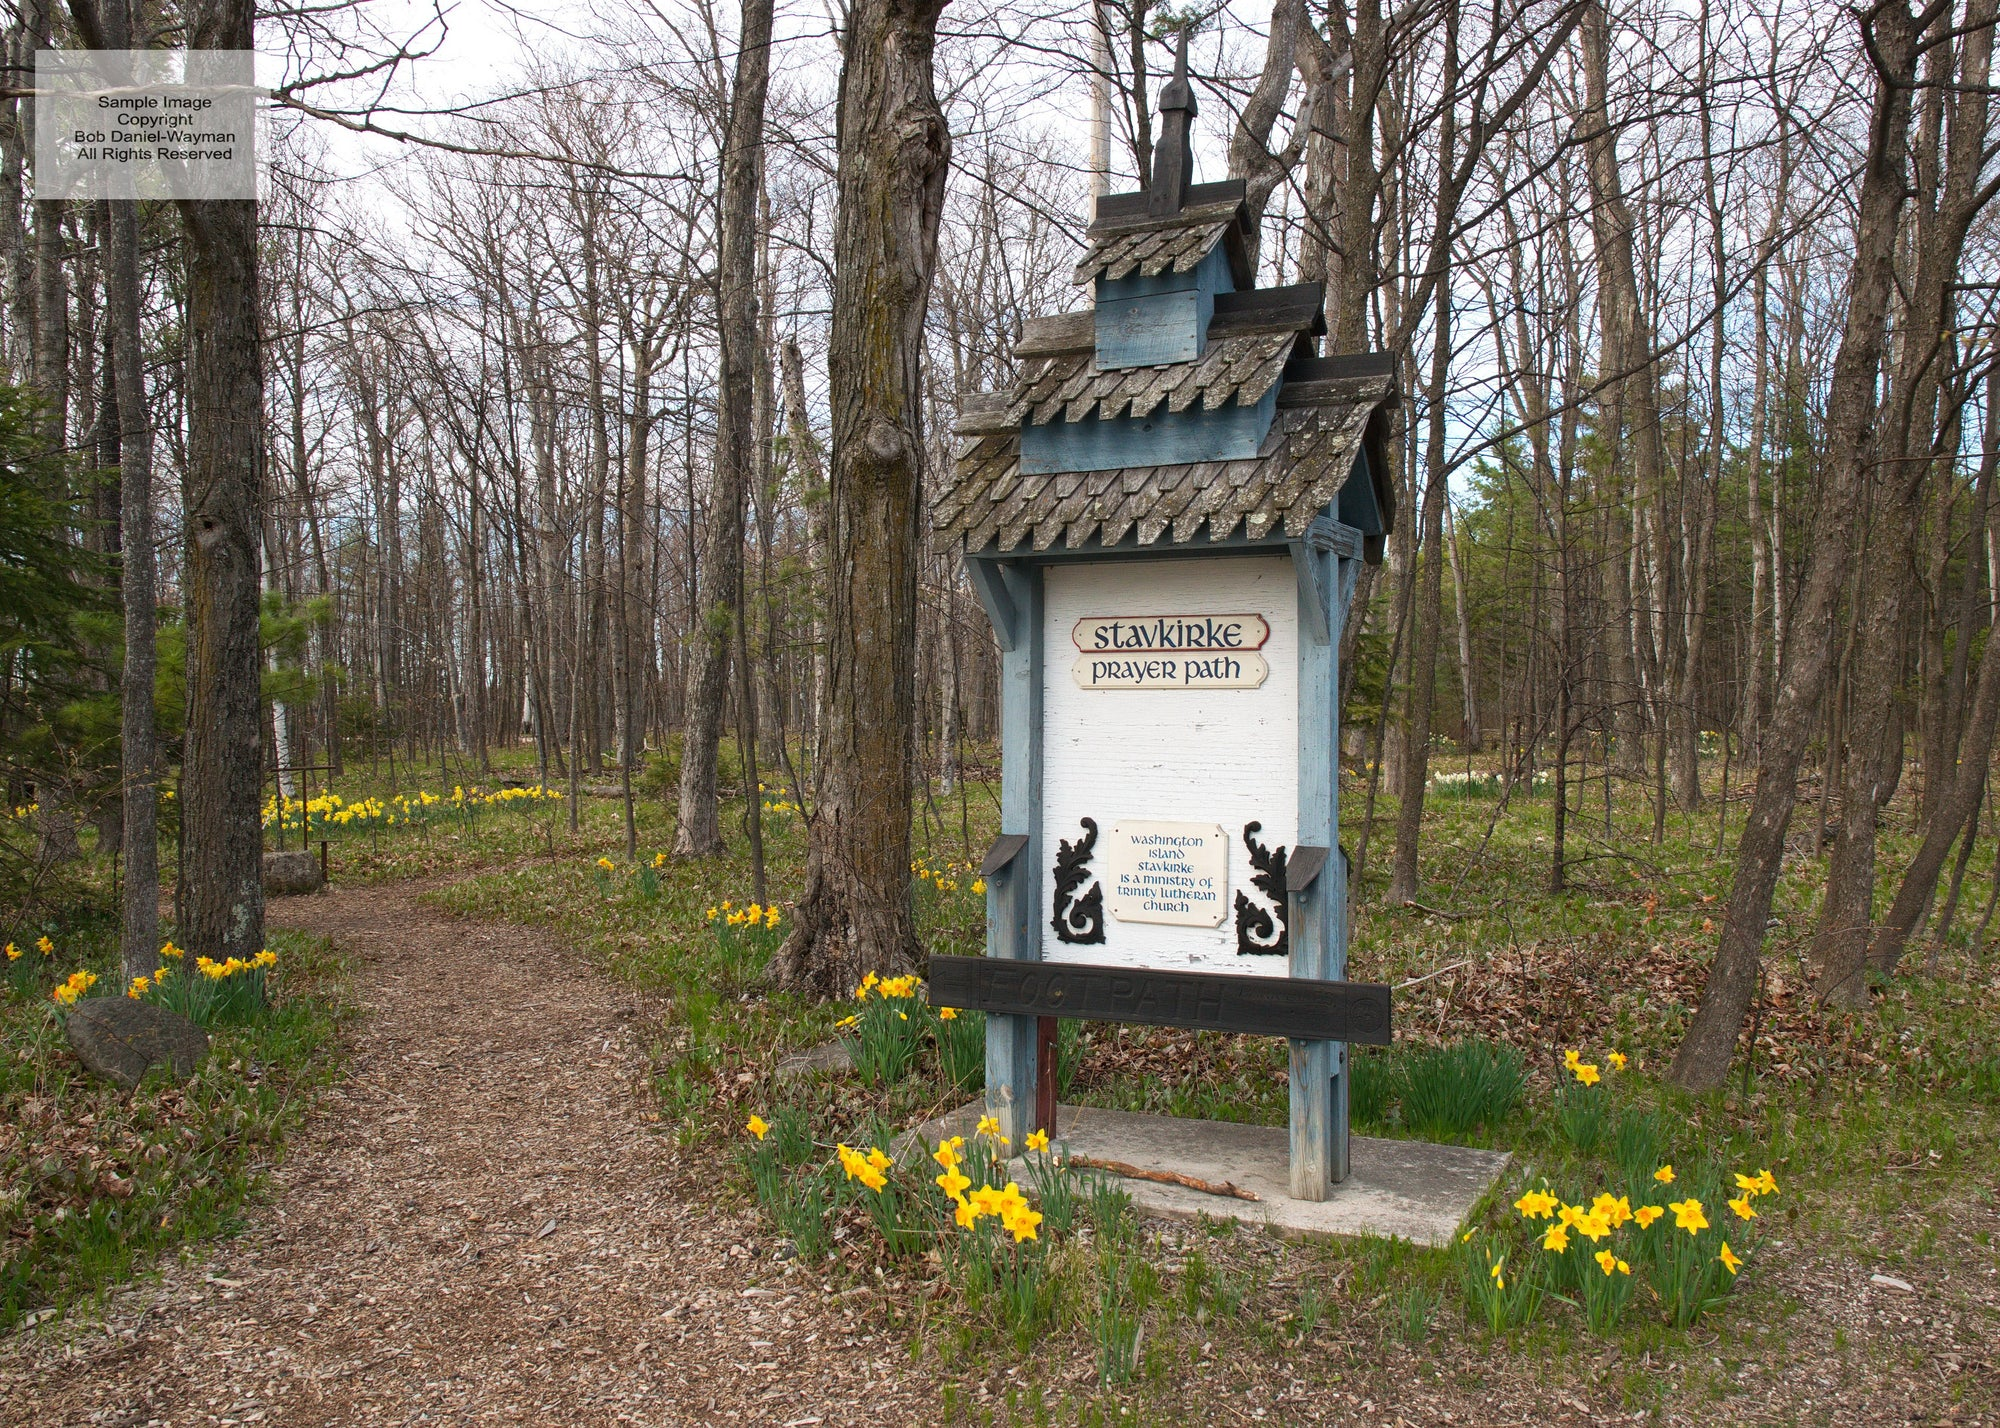 Stavkirke Prayer Path in Spring